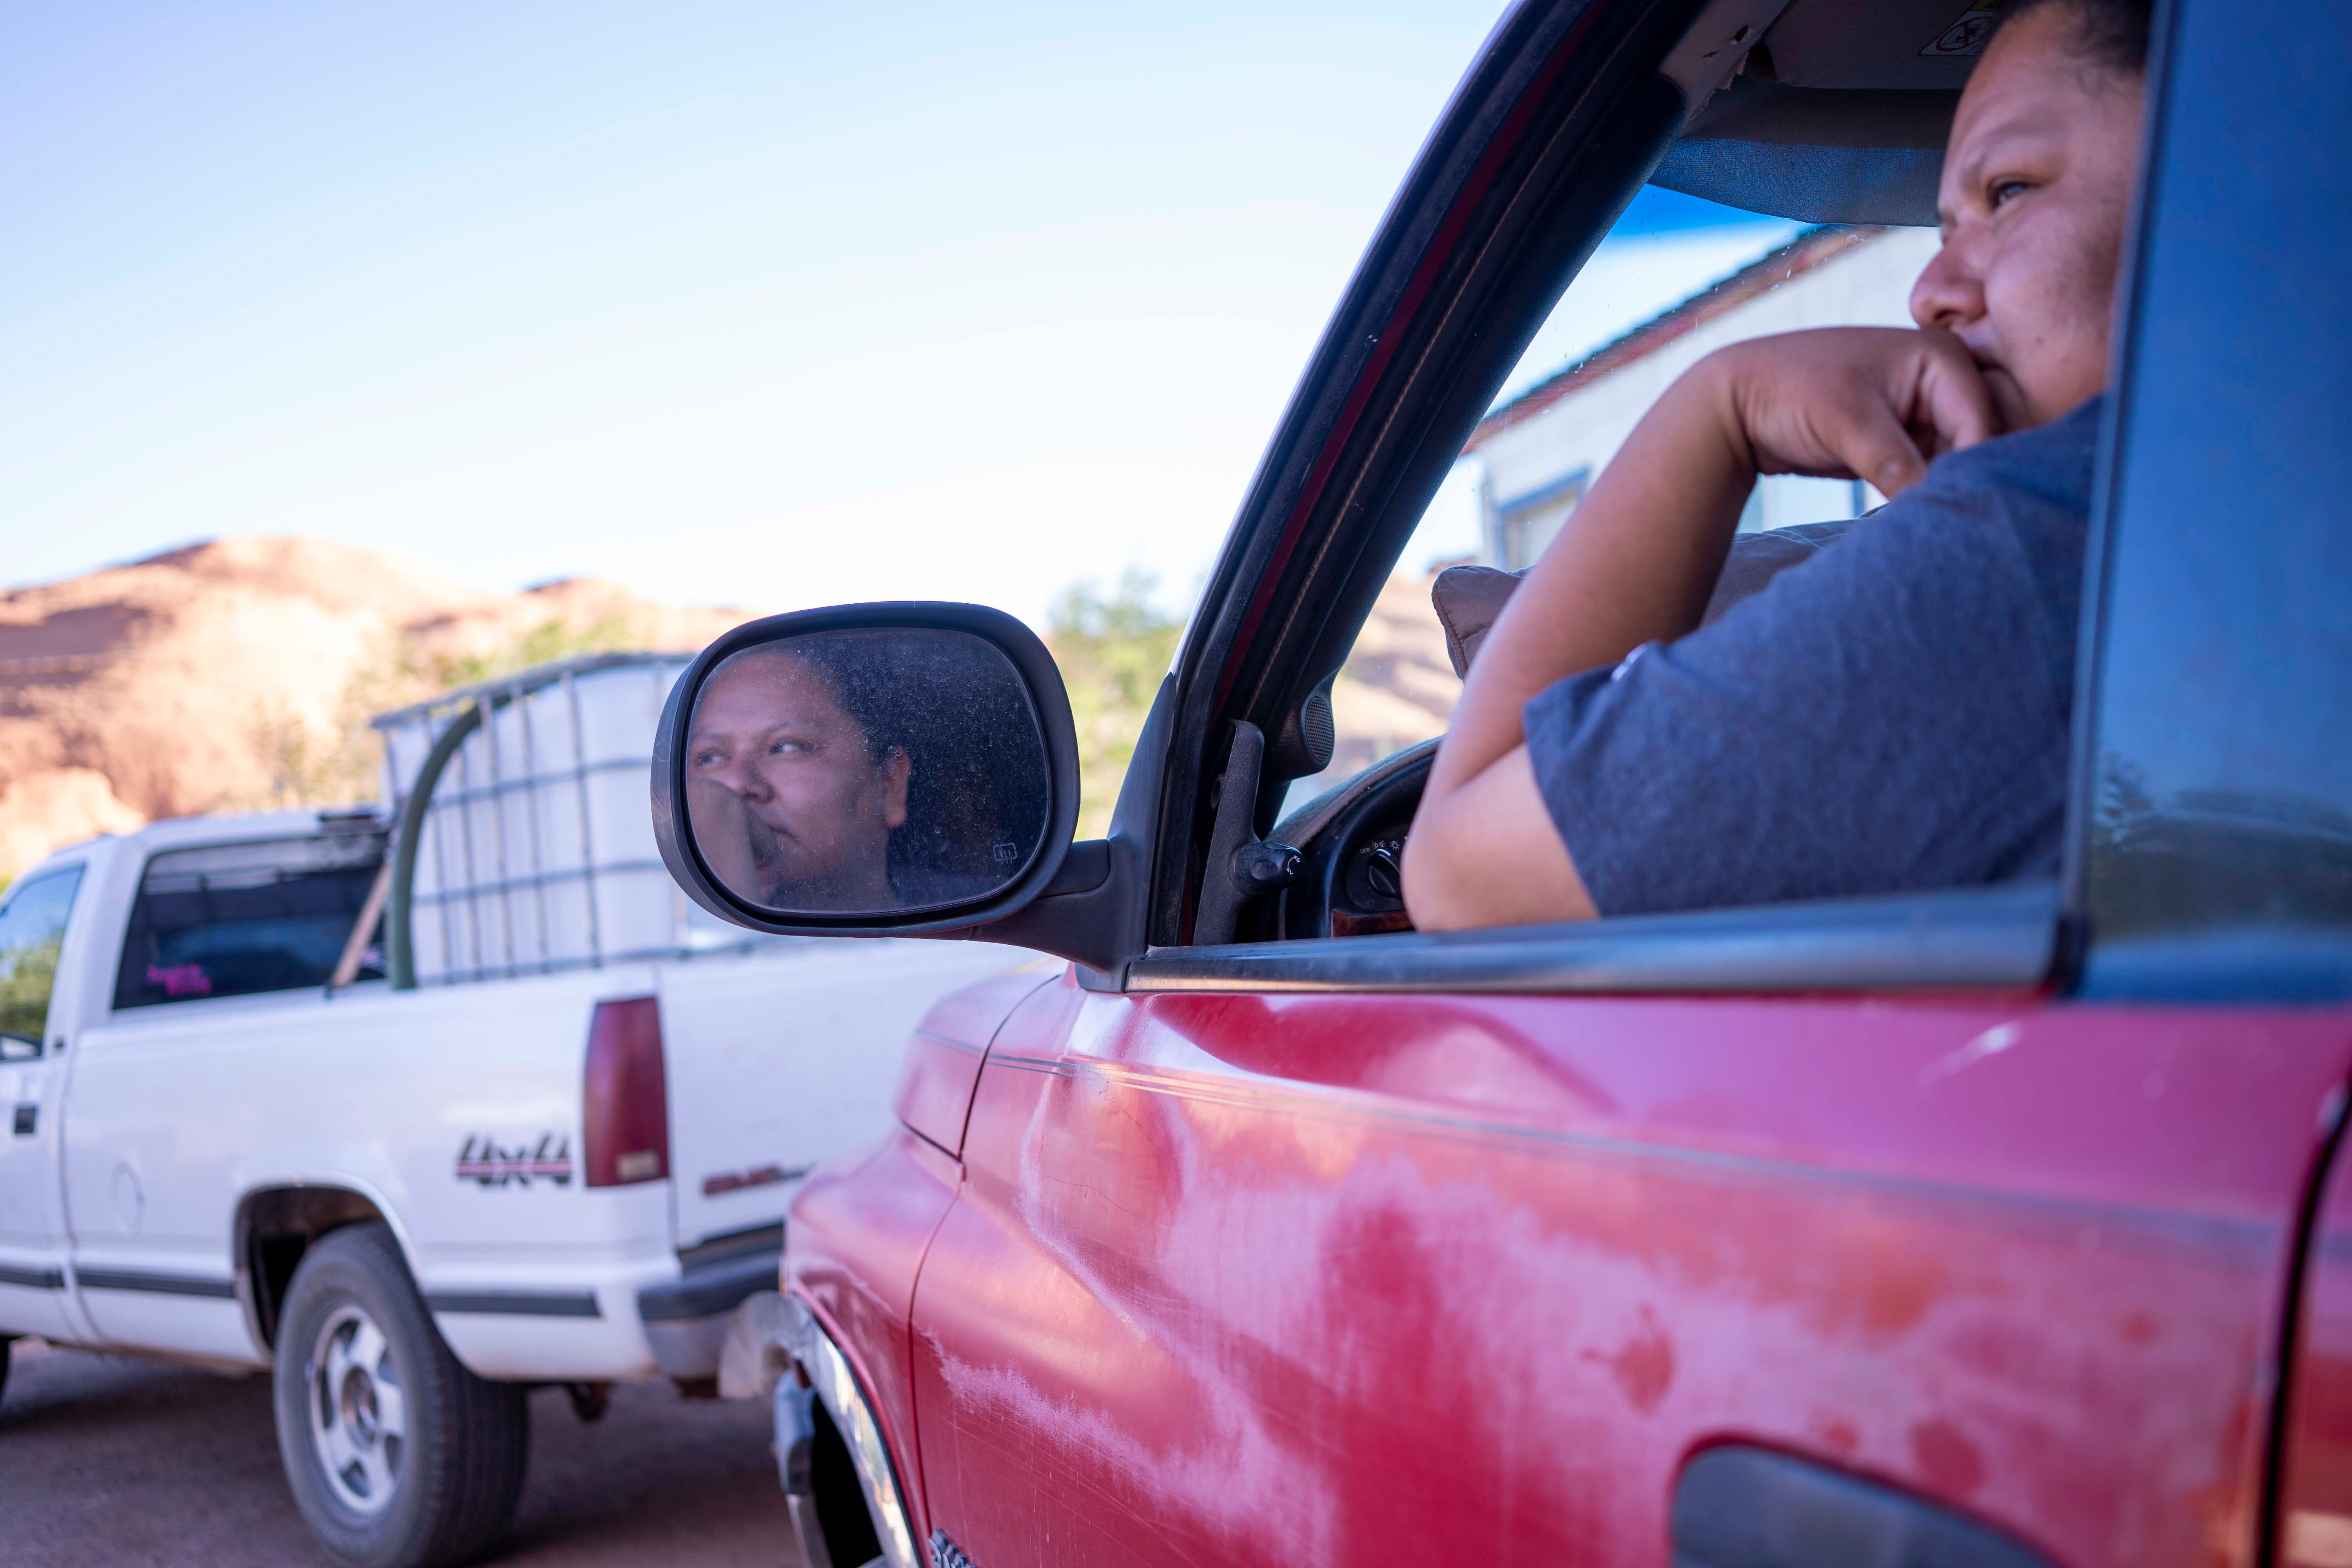 Heidi Nelson waits in line at the water spigot in the community of Goulding, Utah, on the Navajo Nation. She said one tankful of water would be enough to last her family two or three days.